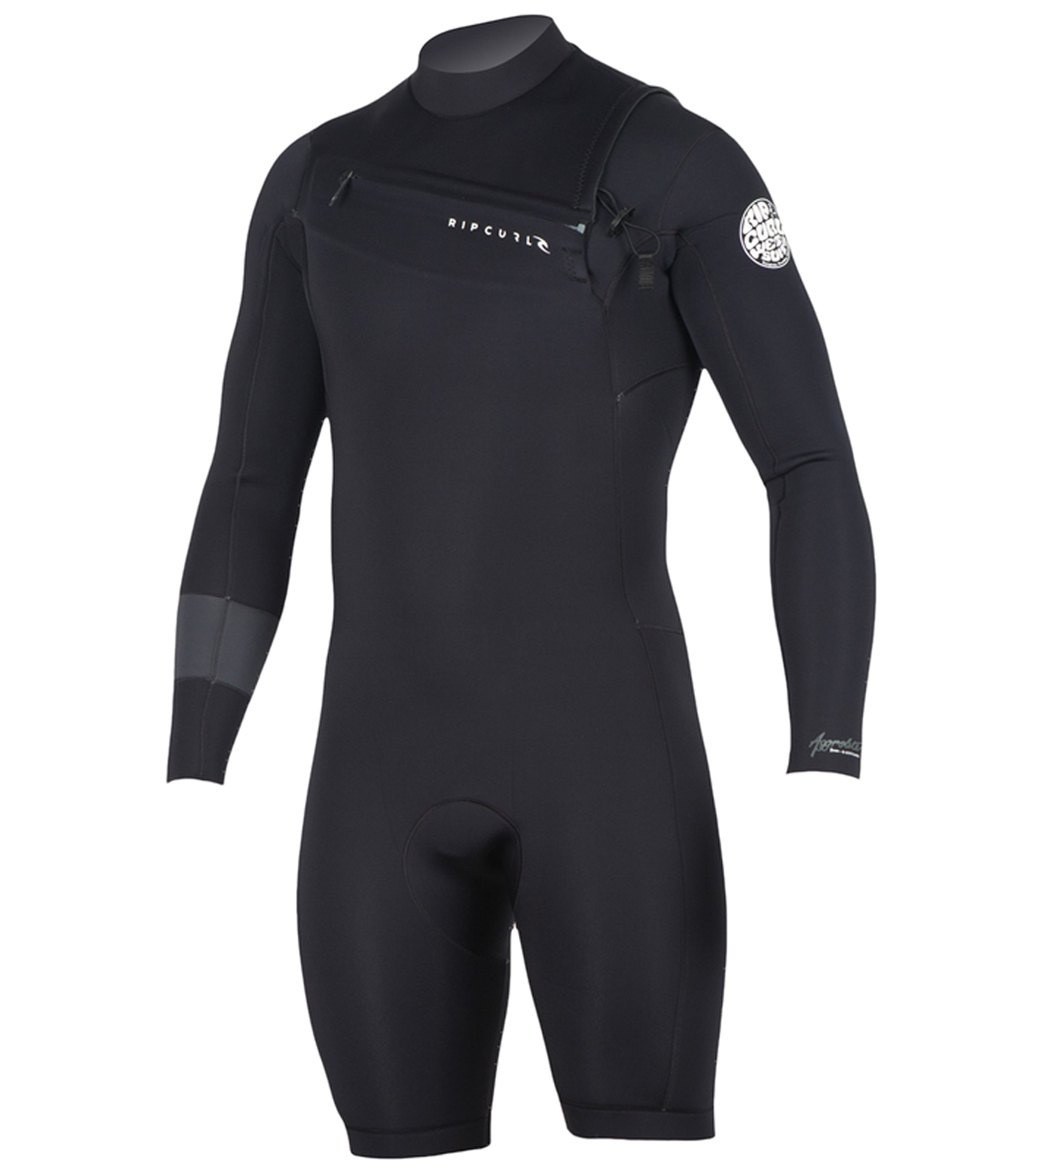 960211a7b611 Rip Curl Men s 2 2mm Aggrolite Long Sleeve Chest Zip Spring Suit Wetsuit